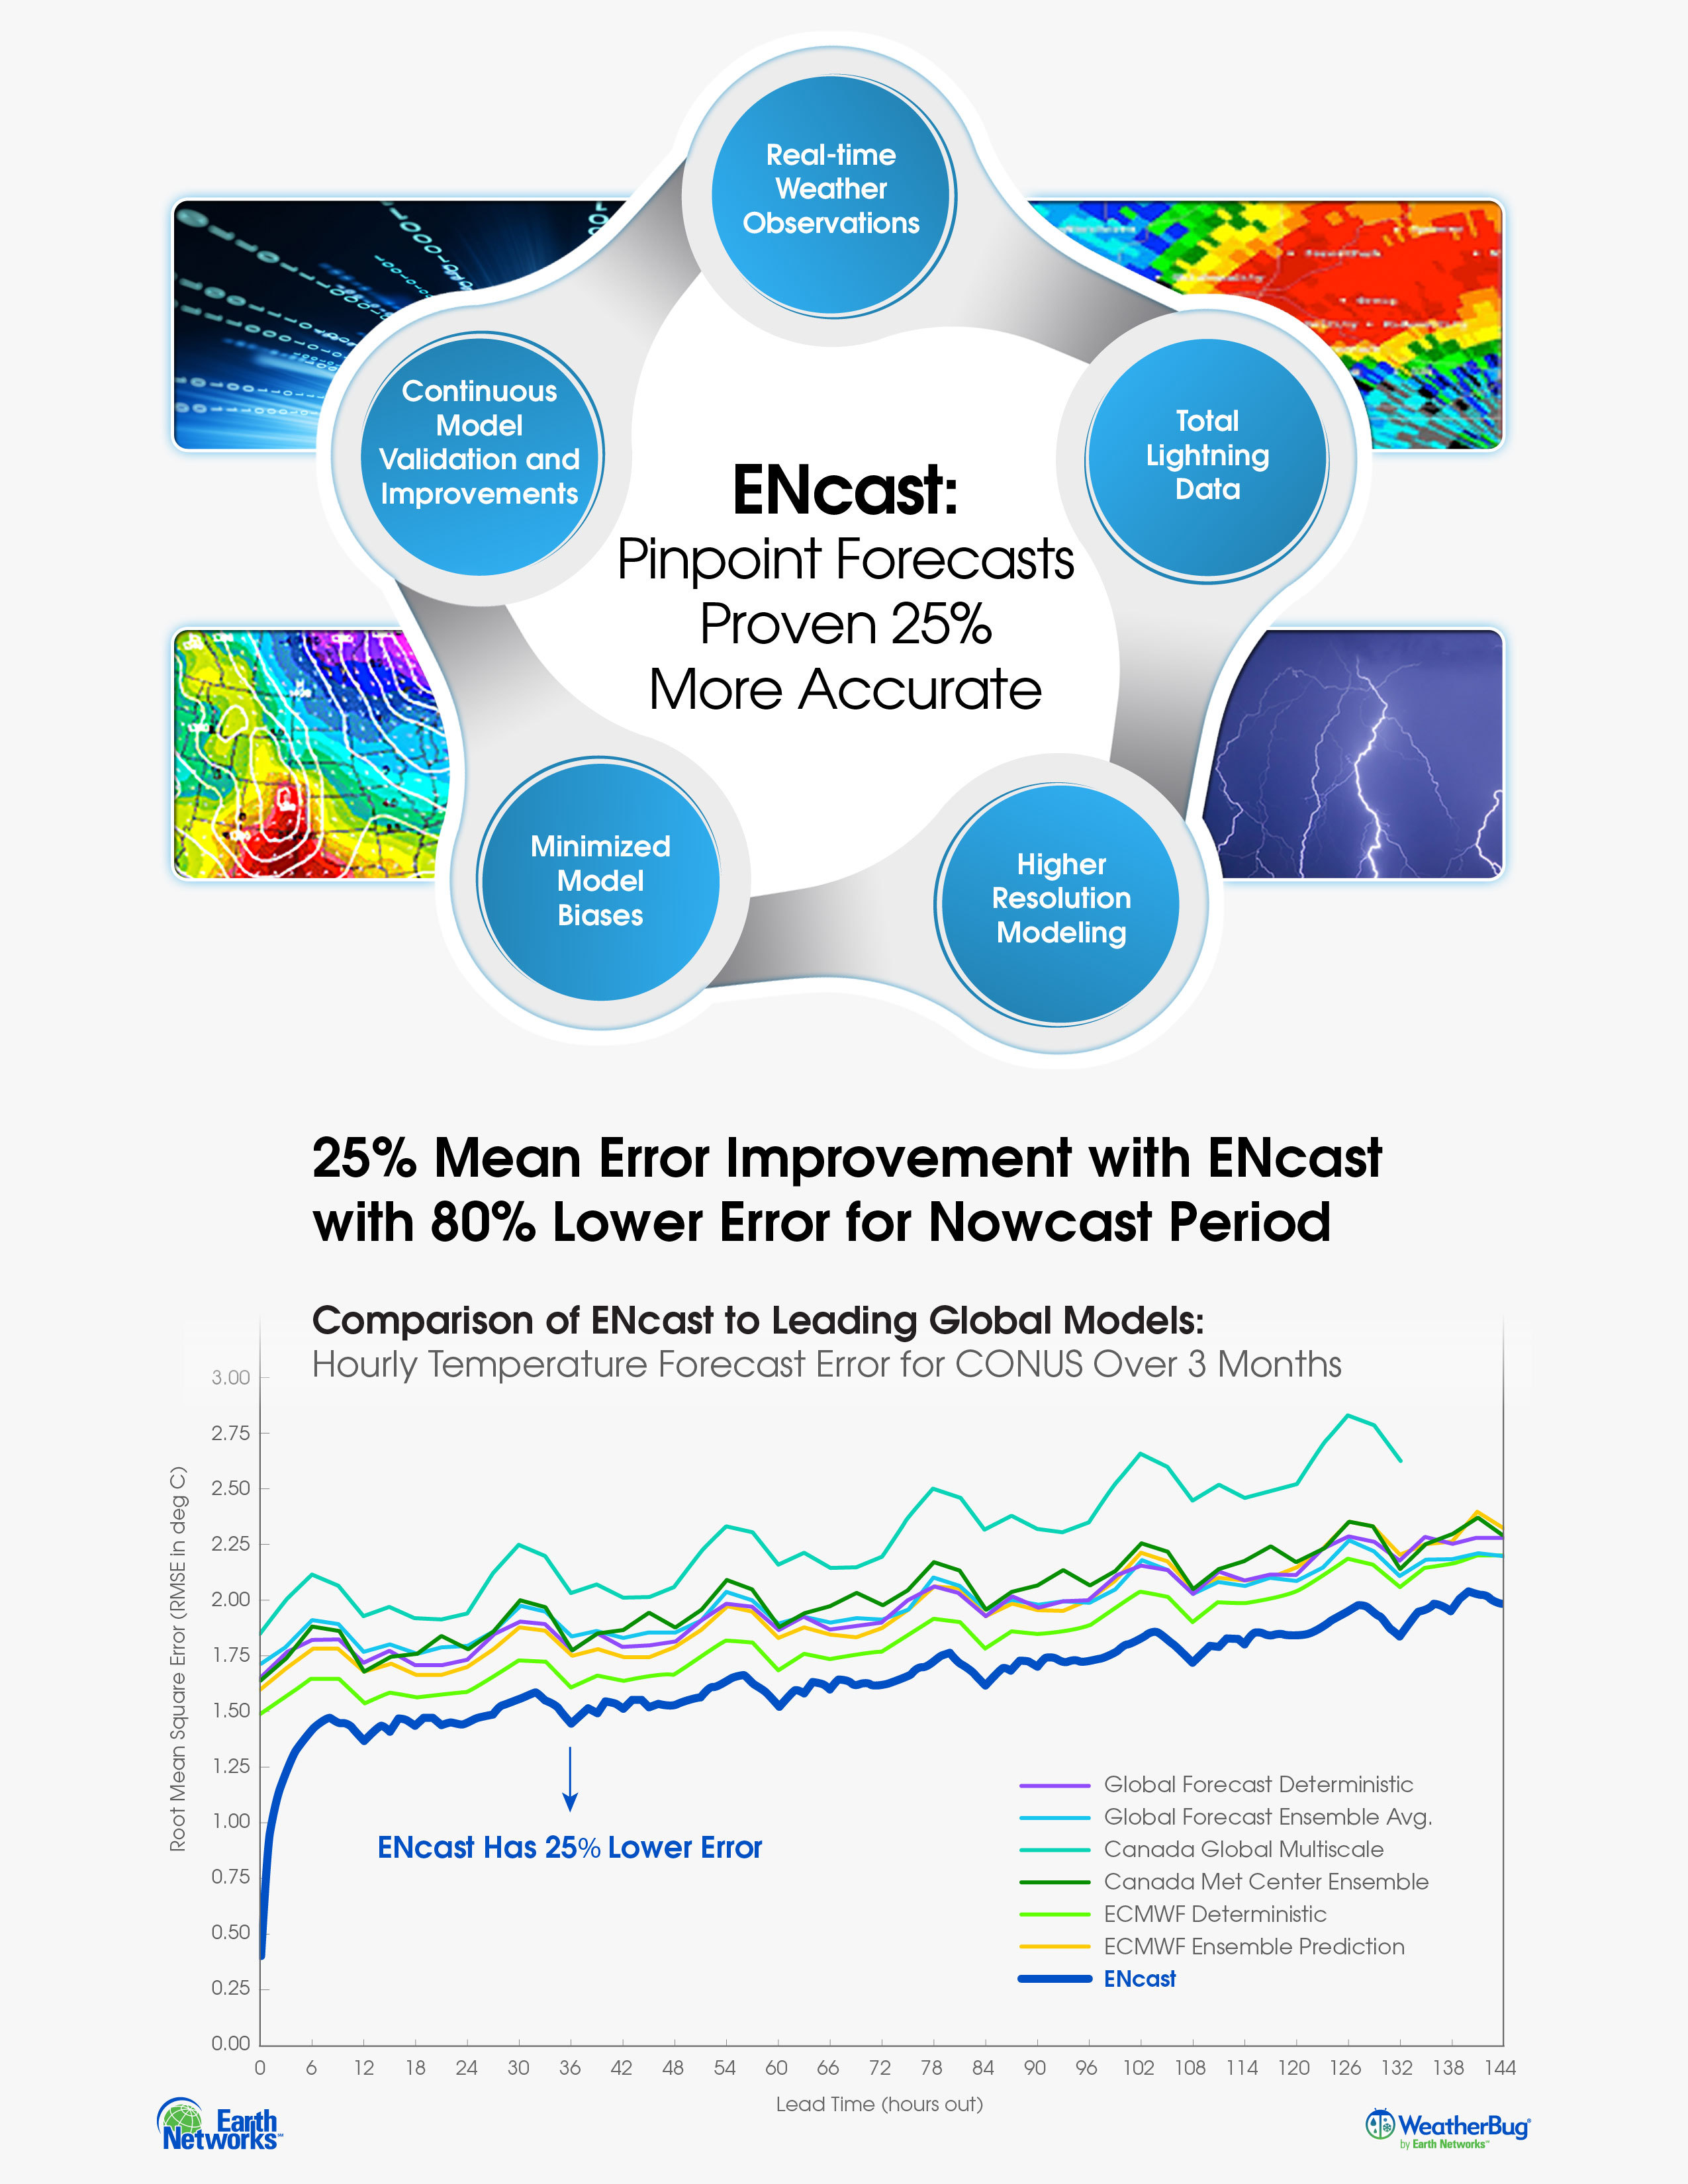 In partnership with GWC, Earth Networks developed ENcast, a unique weather forecasting system that generates pinpoint, accurate and reliable nowcasts to extended 15-day forecasts. (Graphic: Business Wire)